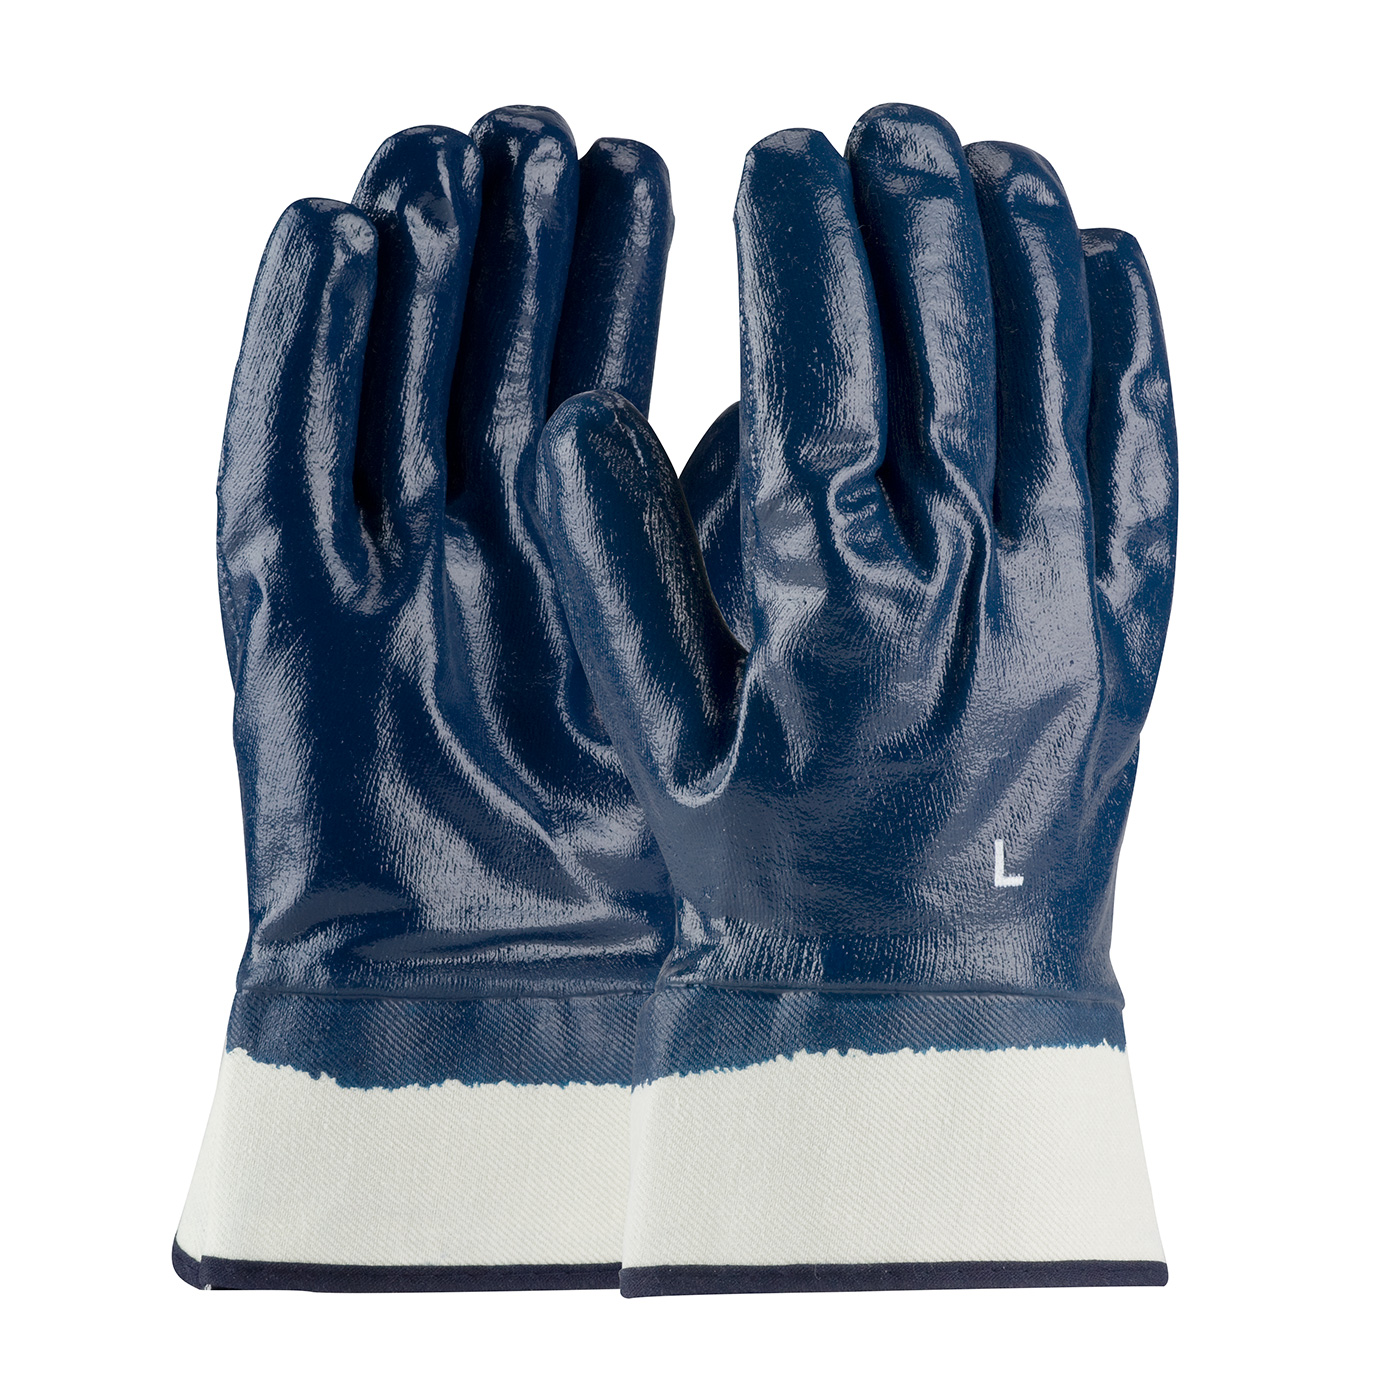 56-3154 PIP® ArmorGrip® Jersey Lined Full Nitrile Dipped Glove with Smooth Grip Texture and Safety Cuff